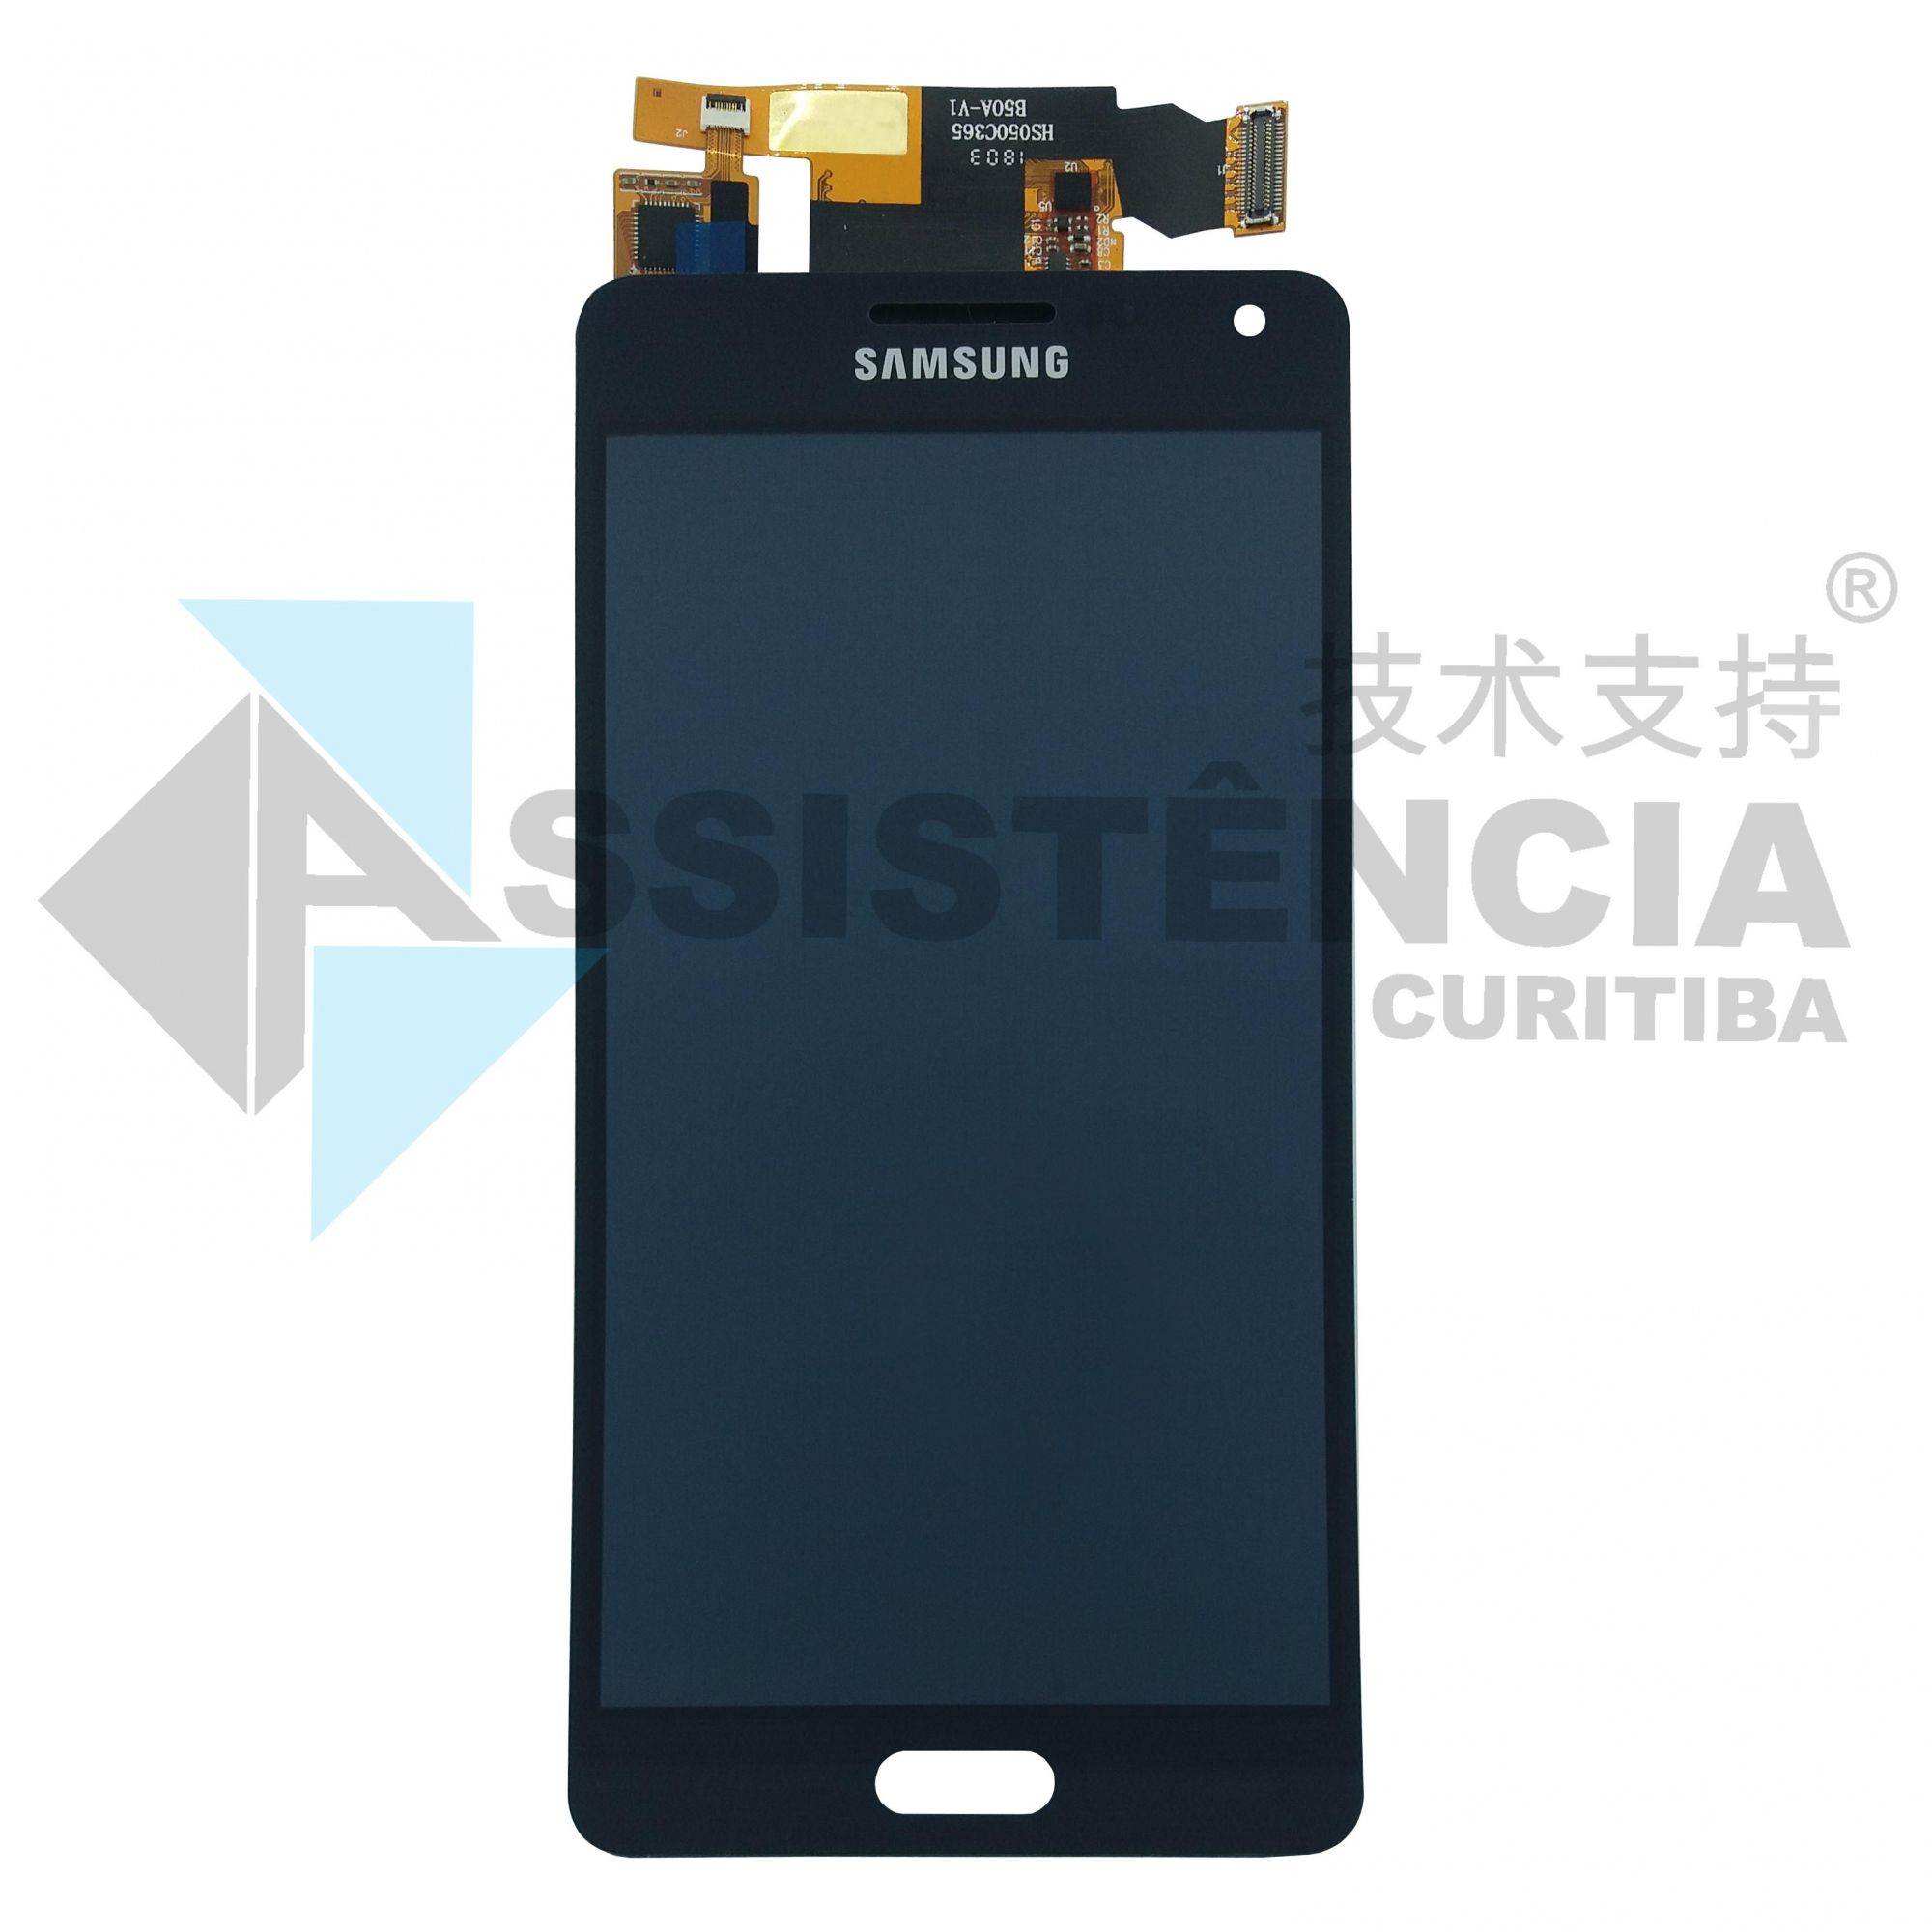 Tela Display Samsung Galaxy A5 A500 Com Brilho Preto